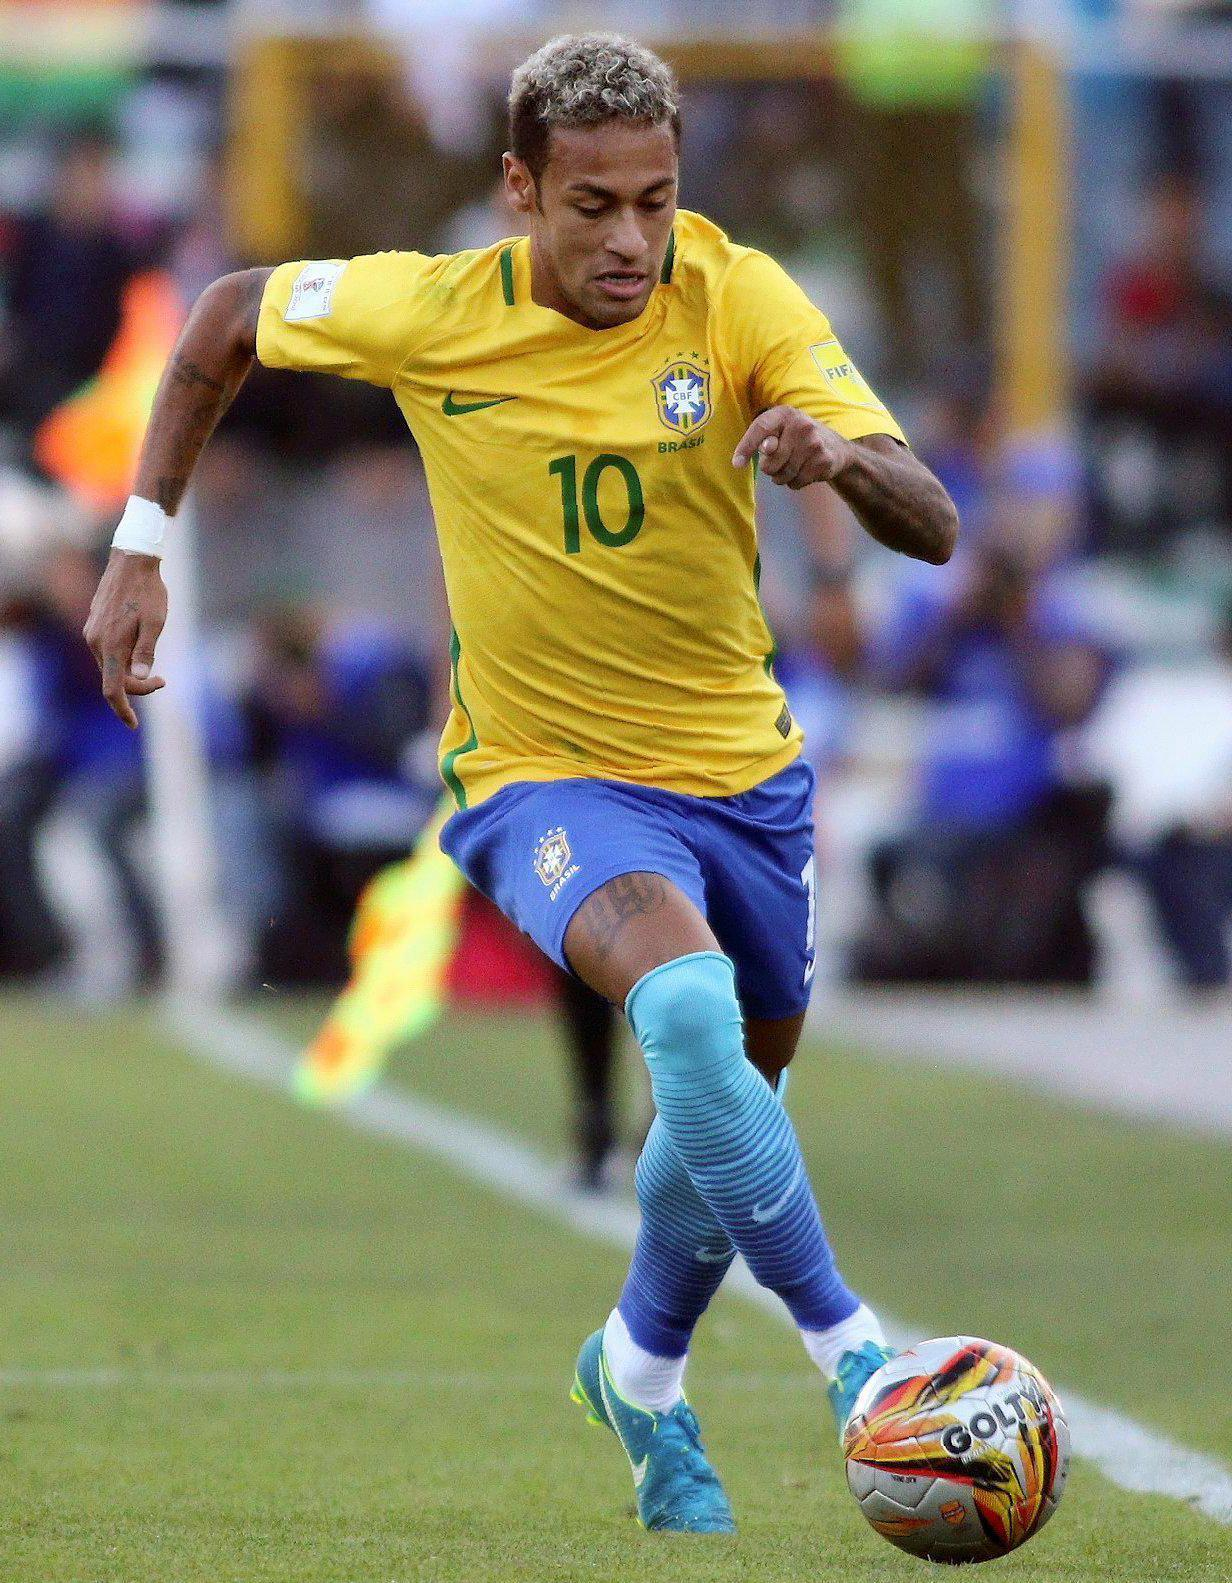 Neymar is a prime example of a modern-day footballer who has risen to the very top through the international age groups